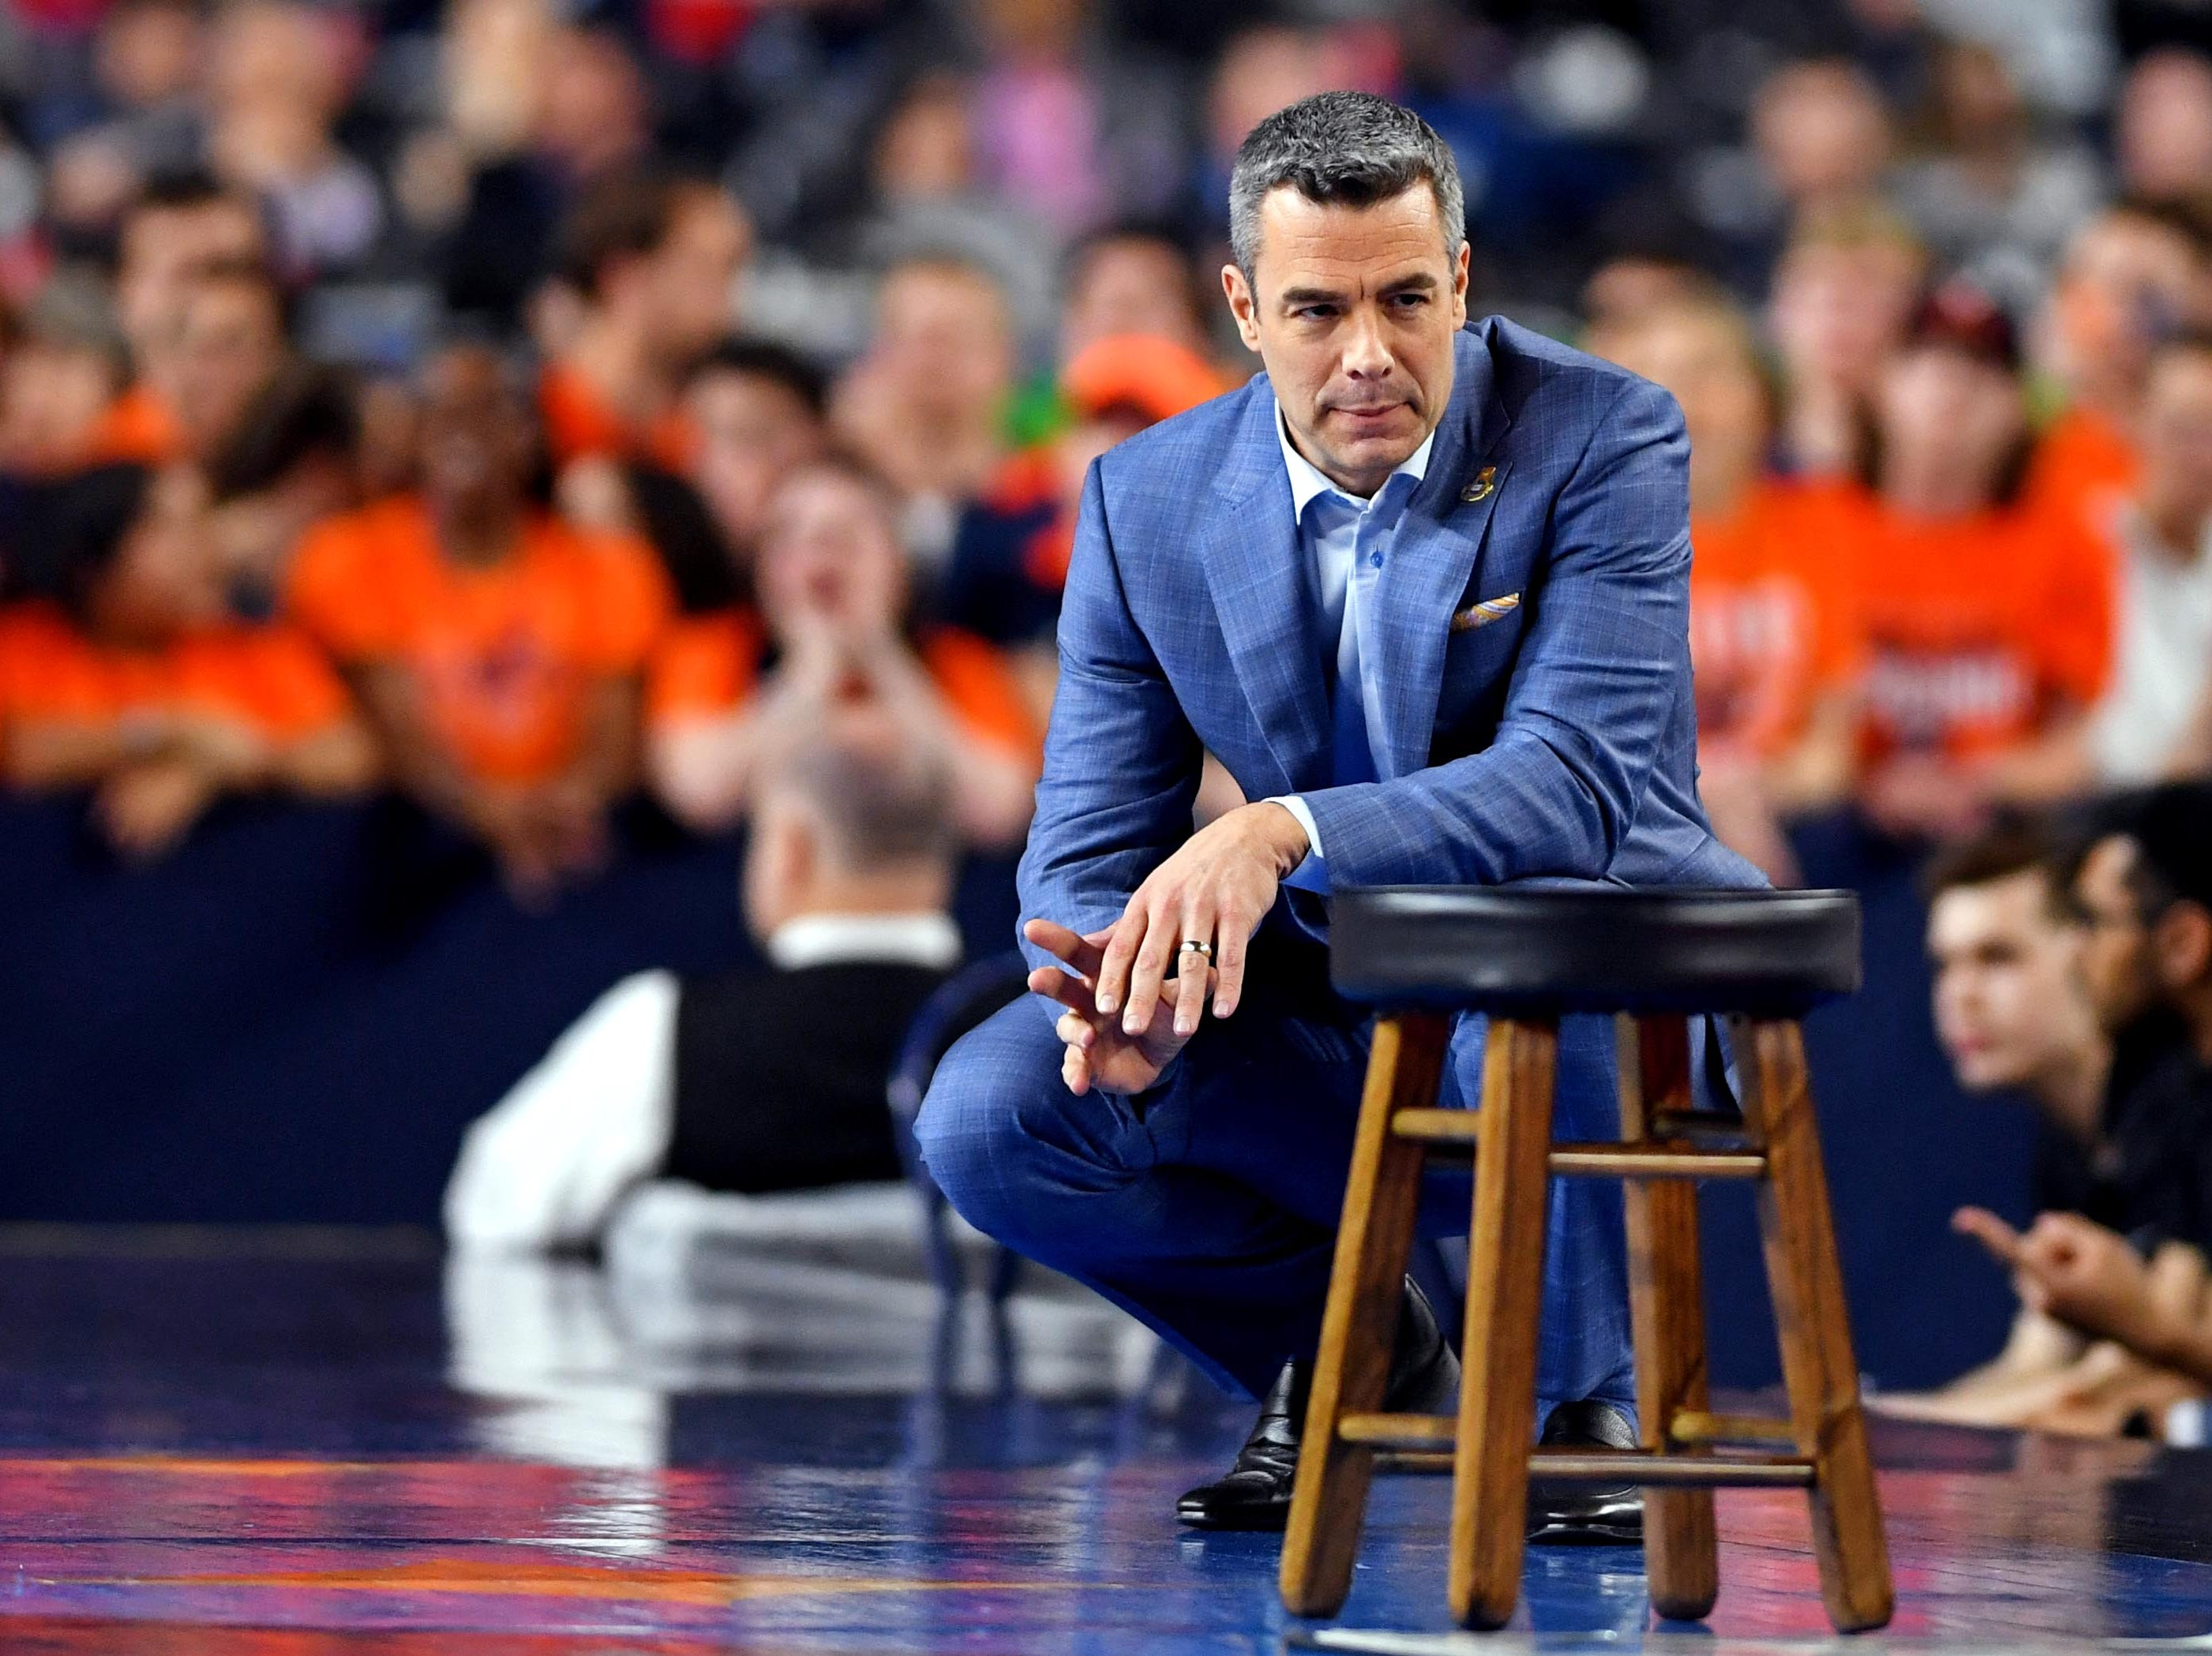 Apr 8, 2019; Minneapolis, MN, USA; Virginia Cavaliers head coach Tony Bennett during the first half against the Texas Tech Red Raiders in the championship game of the 2019 men's Final Four at US Bank Stadium. Mandatory Credit: Bob Donnan-USA TODAY Sports